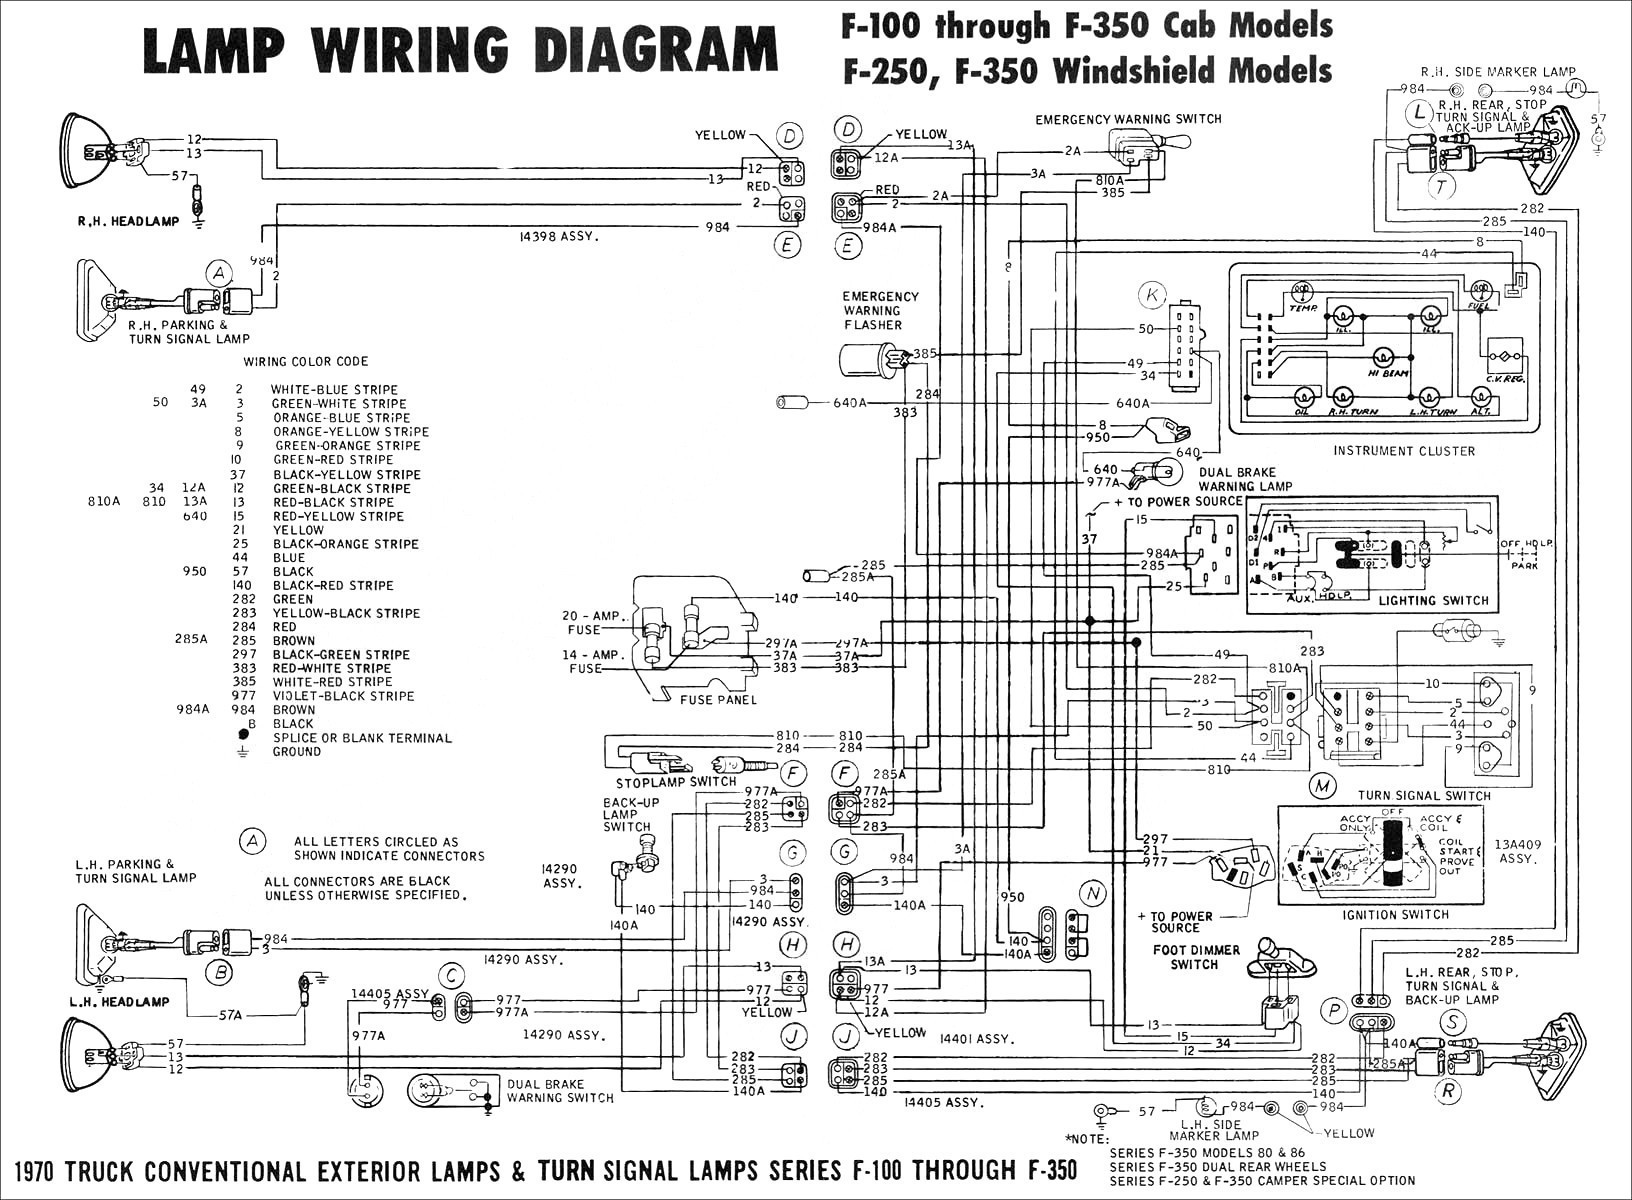 2008 Audi A4 Engine Diagram Audi A4 V6 Wiring Diagram Example Electrical Wiring Diagram • Of 2008 Audi A4 Engine Diagram